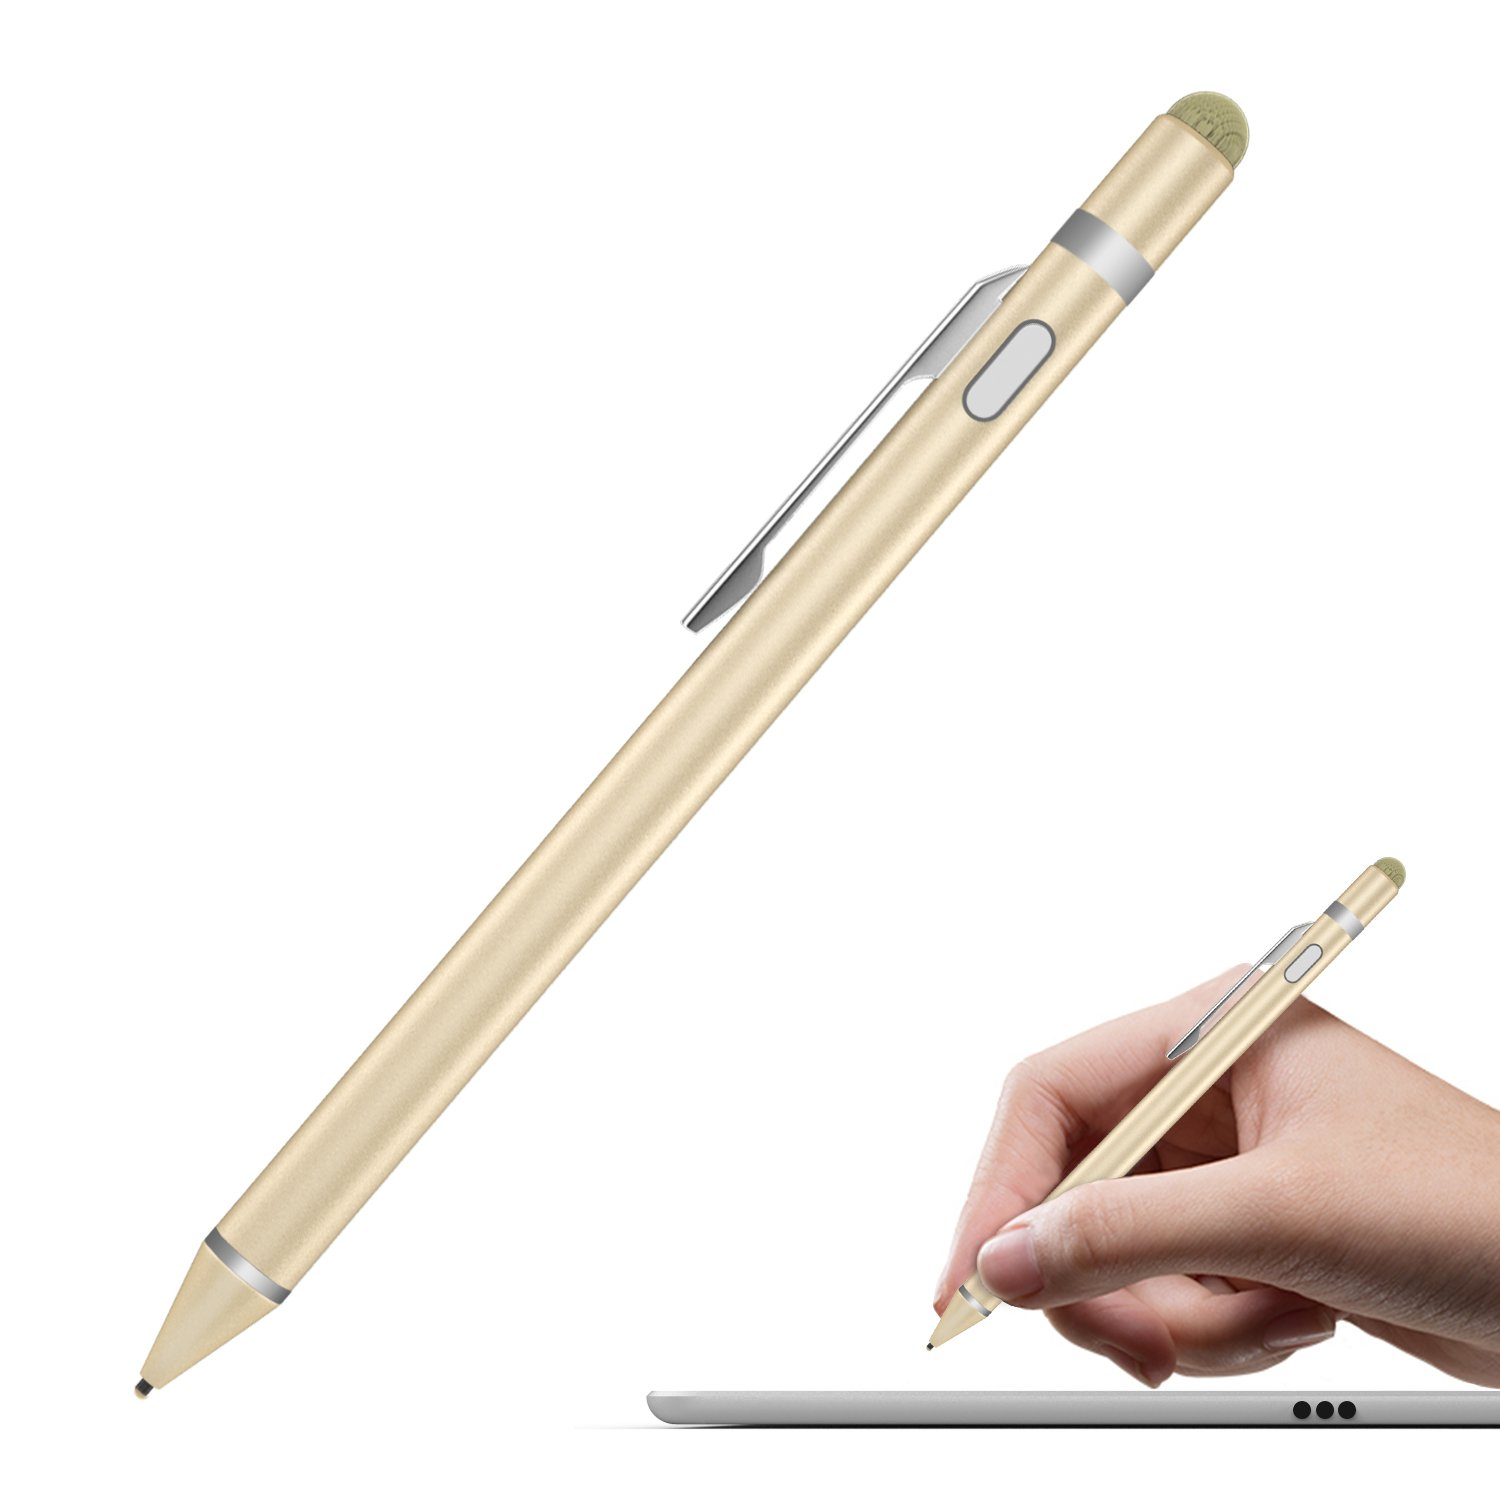 MoKo Universal Active Stylus, 2 in 1 High Precision Sensitivity 1.5mm Capacitive Pen for Touch Screen Devices Smartphones & Tablets (iPad,iPhone Xs/XS Max/XR/X/8/8 Plus,Samsung) - Rose Gold